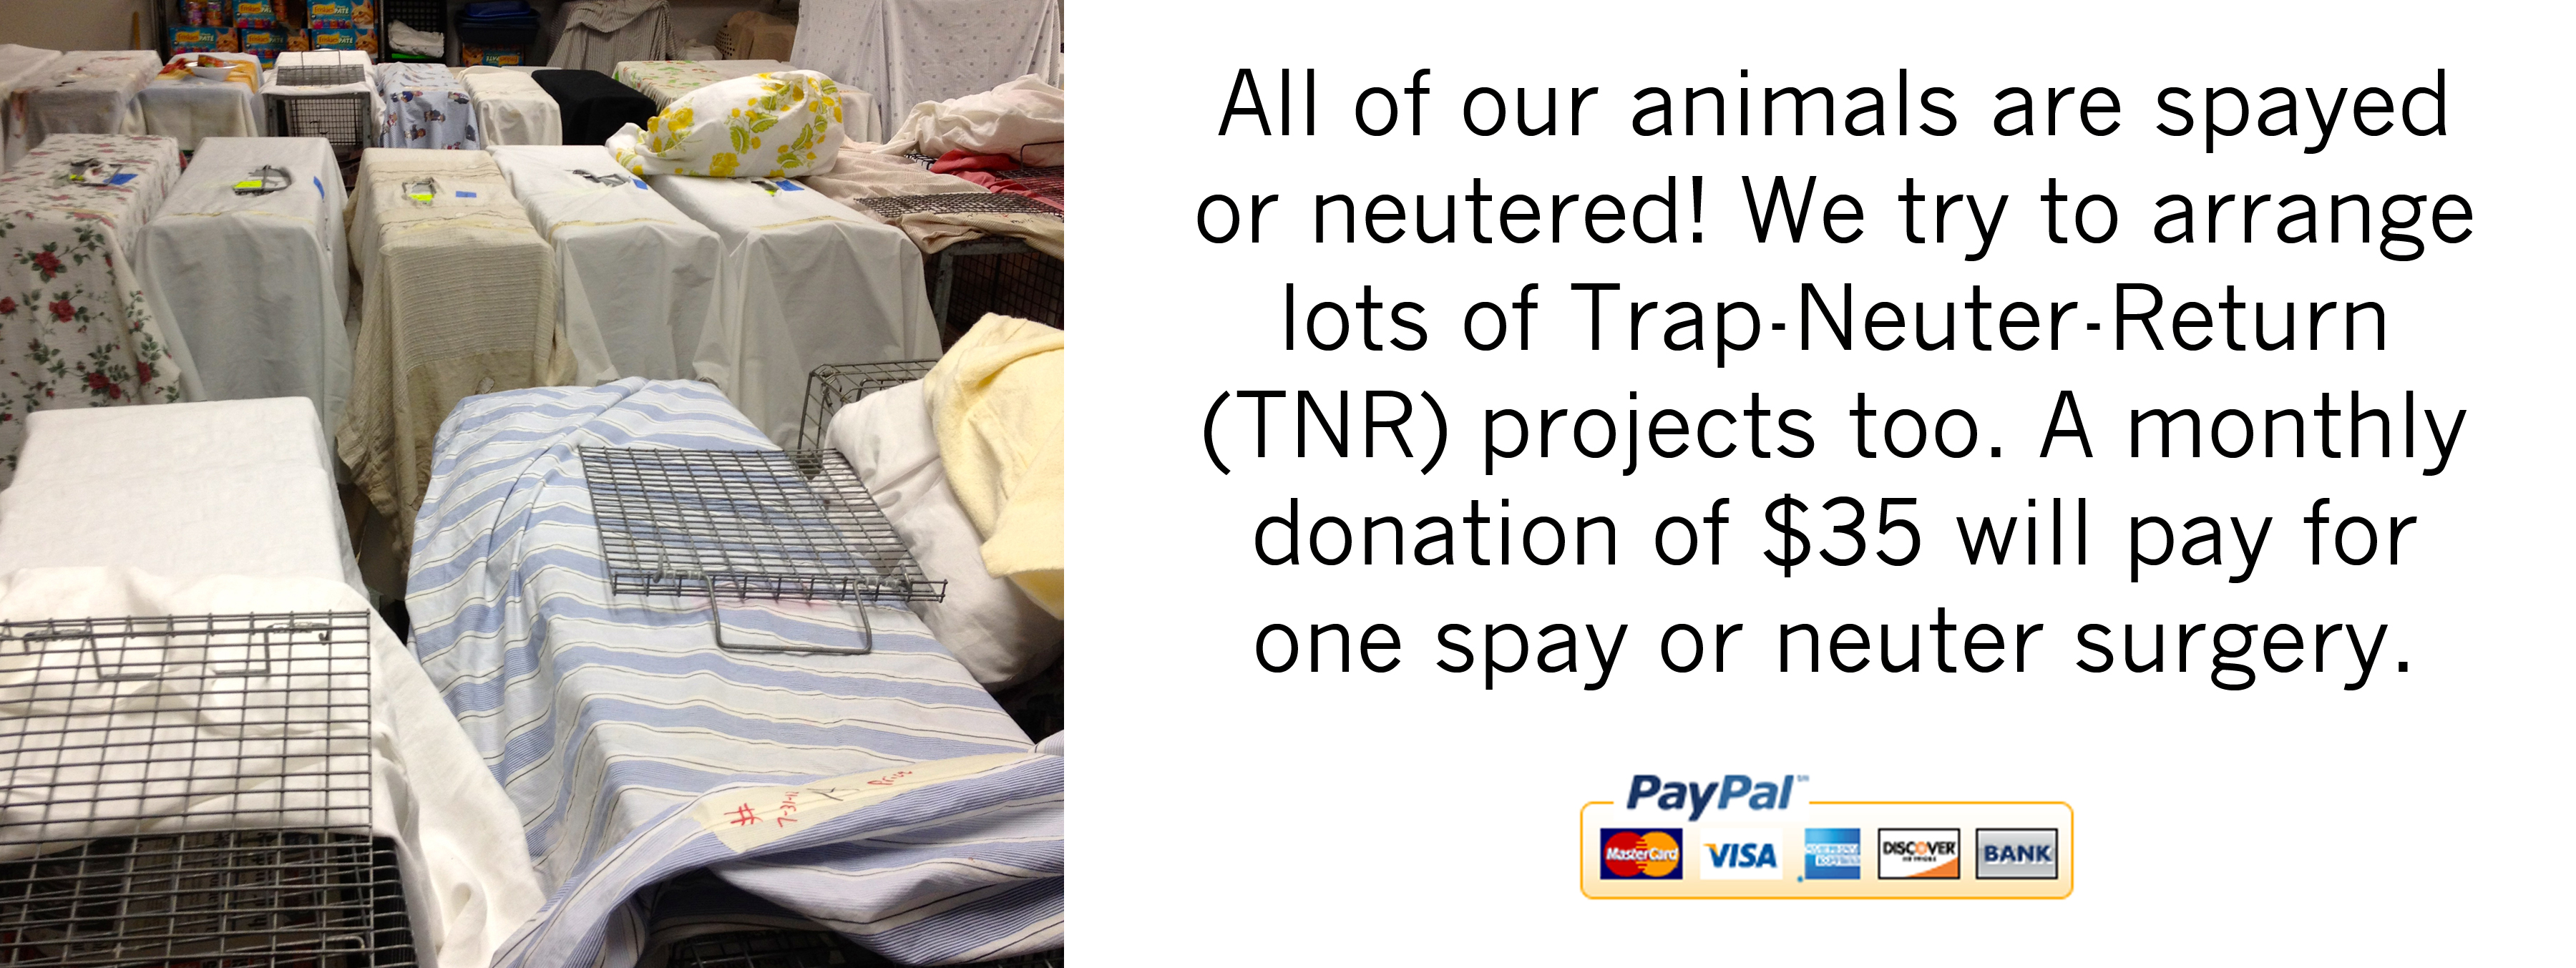 Snip, snip: spay/neuter time!